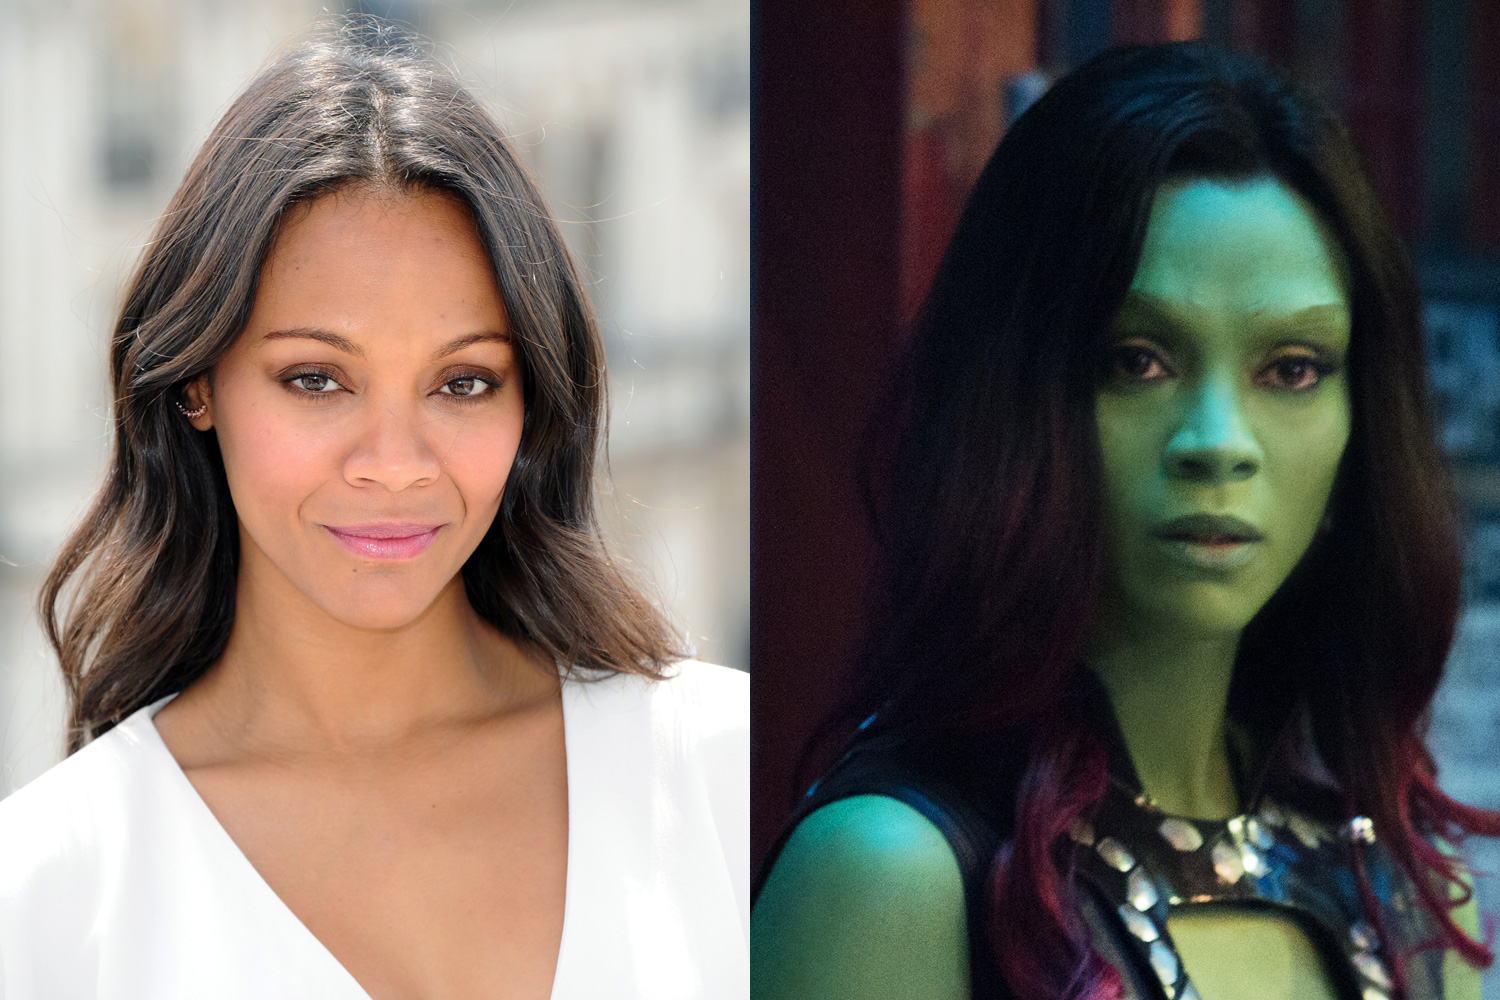 Zoe Saldana trades her Na'vi blue for Gamora green in Guardians of the Galaxy. The artists didn't want the green to put people off, and chose the shade to show vibrance and youthfulness. The makeup and prosthetics took five hours every morning.